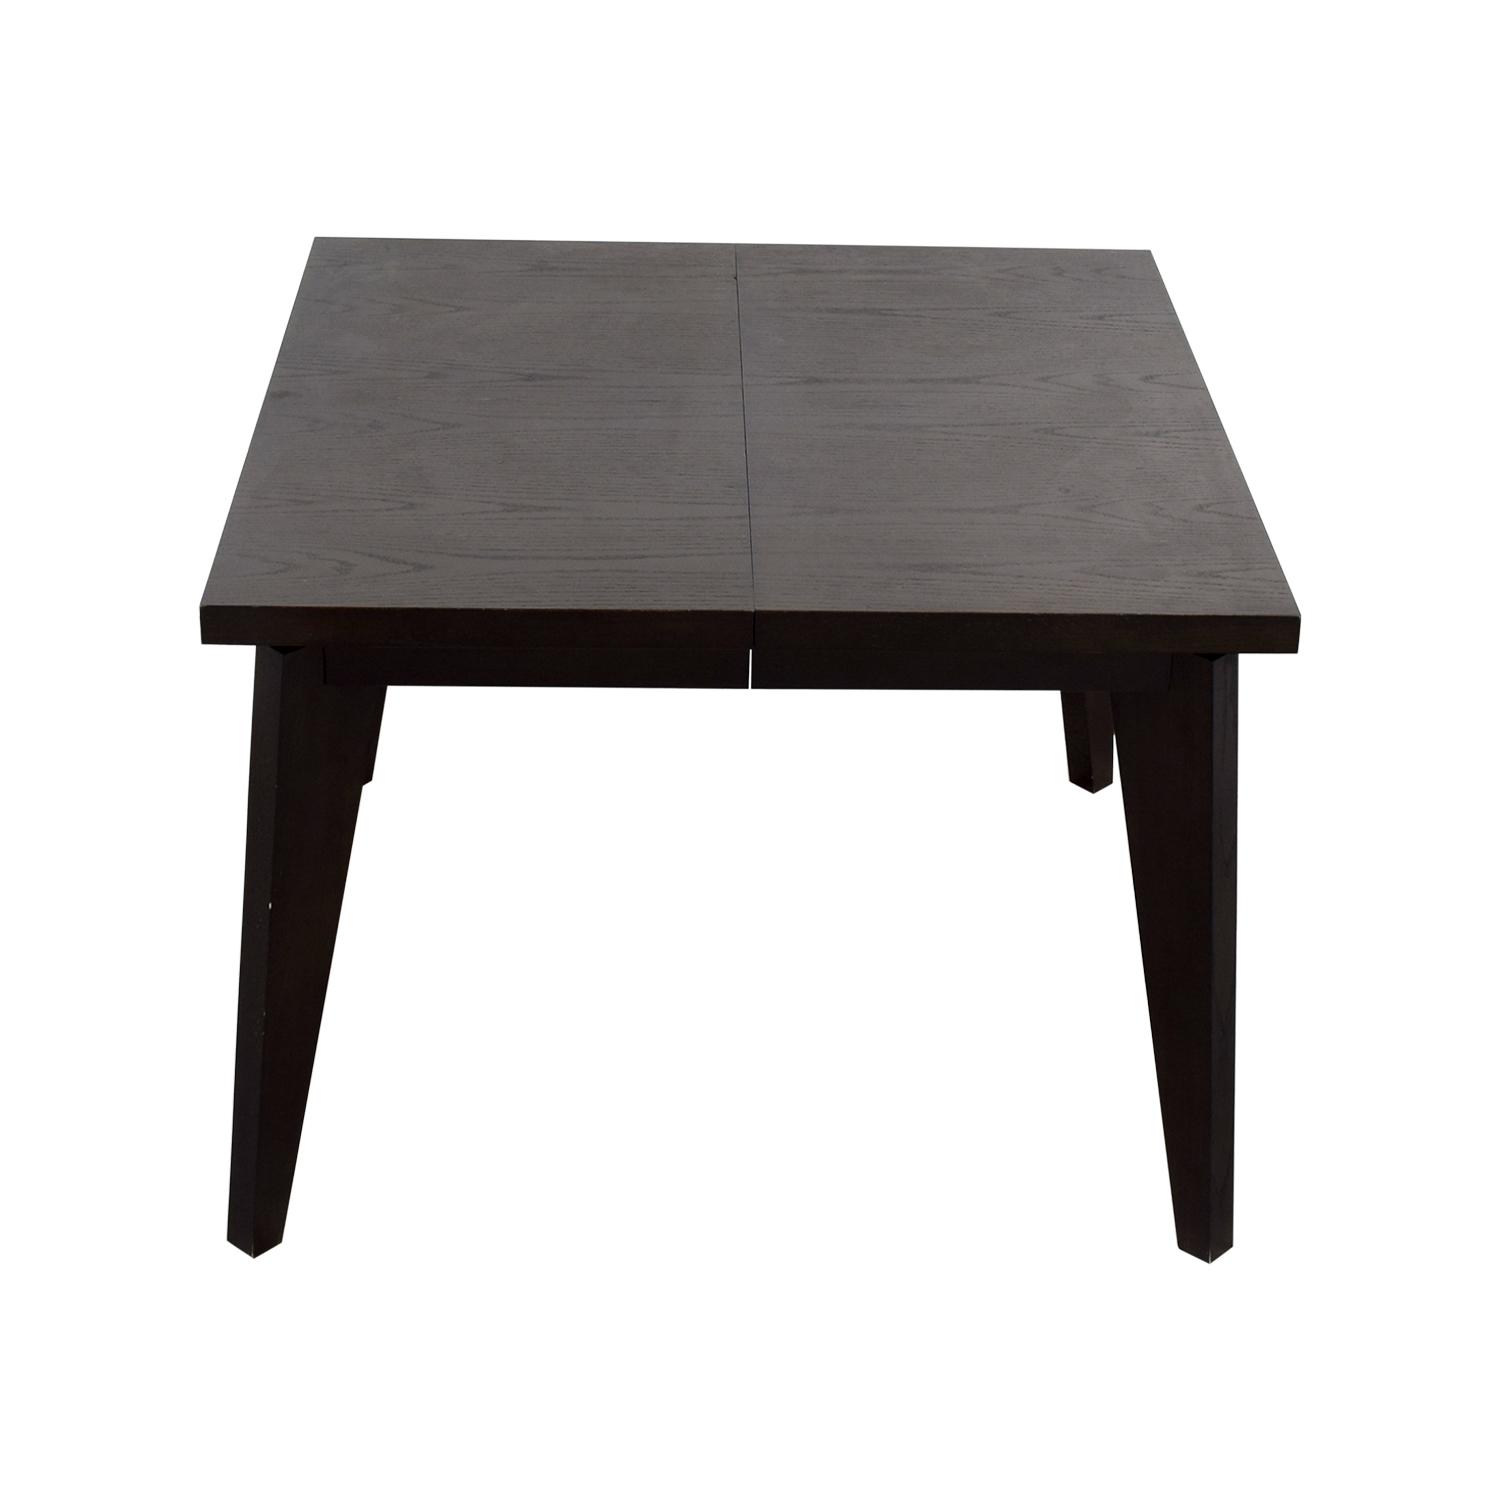 West Elm West Elm Extendable Dining Table on sale